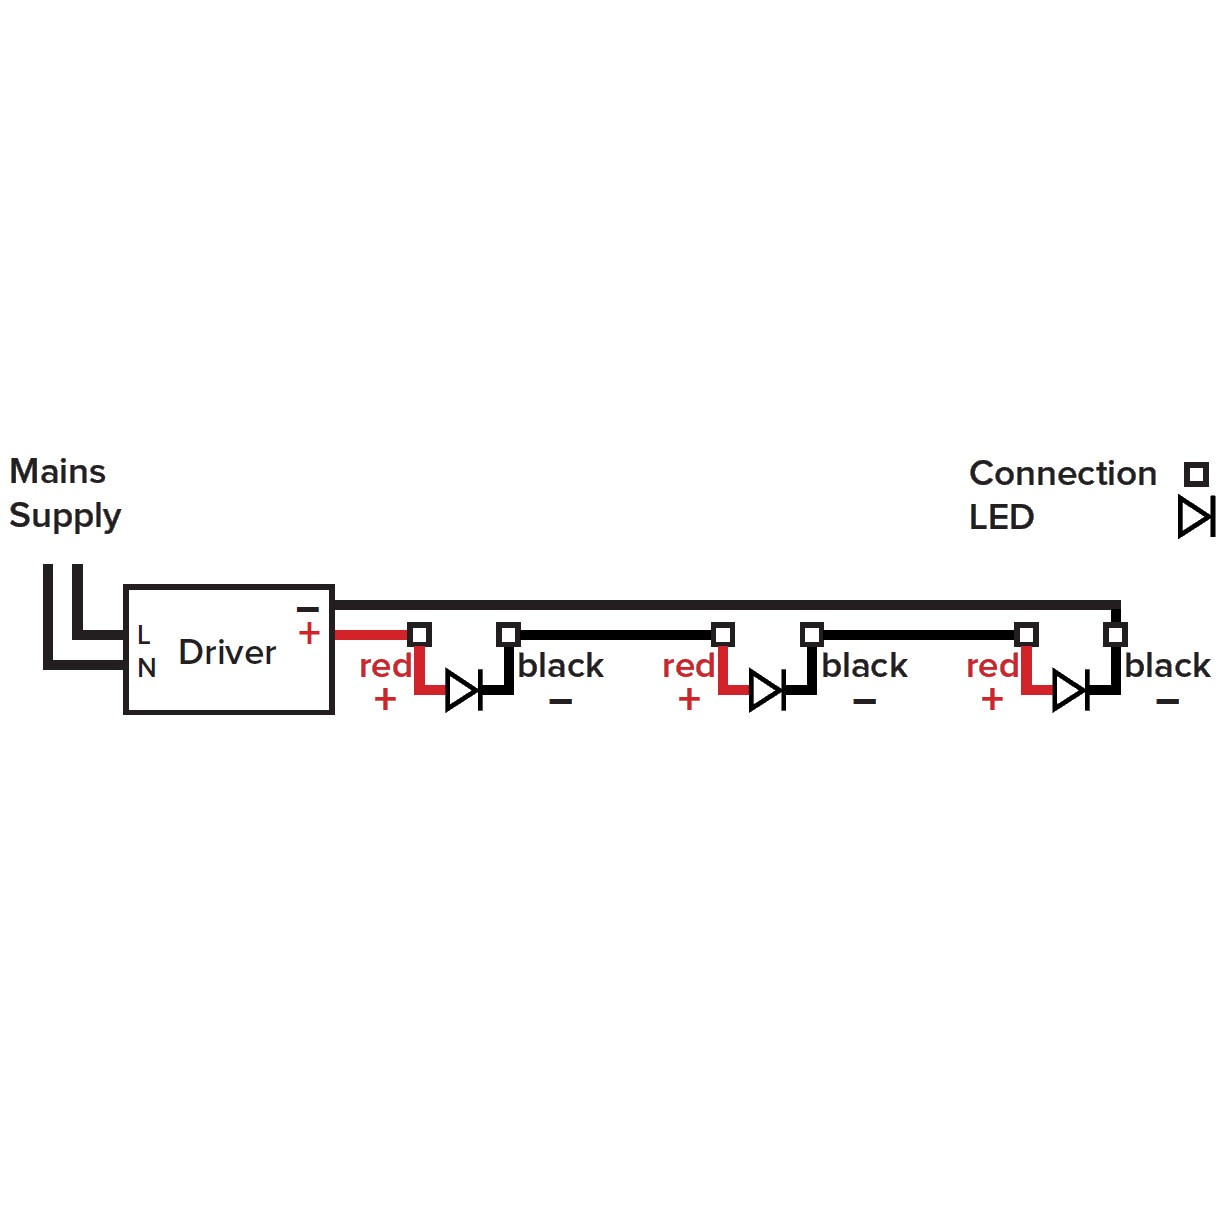 Txdel 700d Constant Current Driver 4chip Products Additionally Light Ballast Wiring Diagram On 0 10v Dimming Led